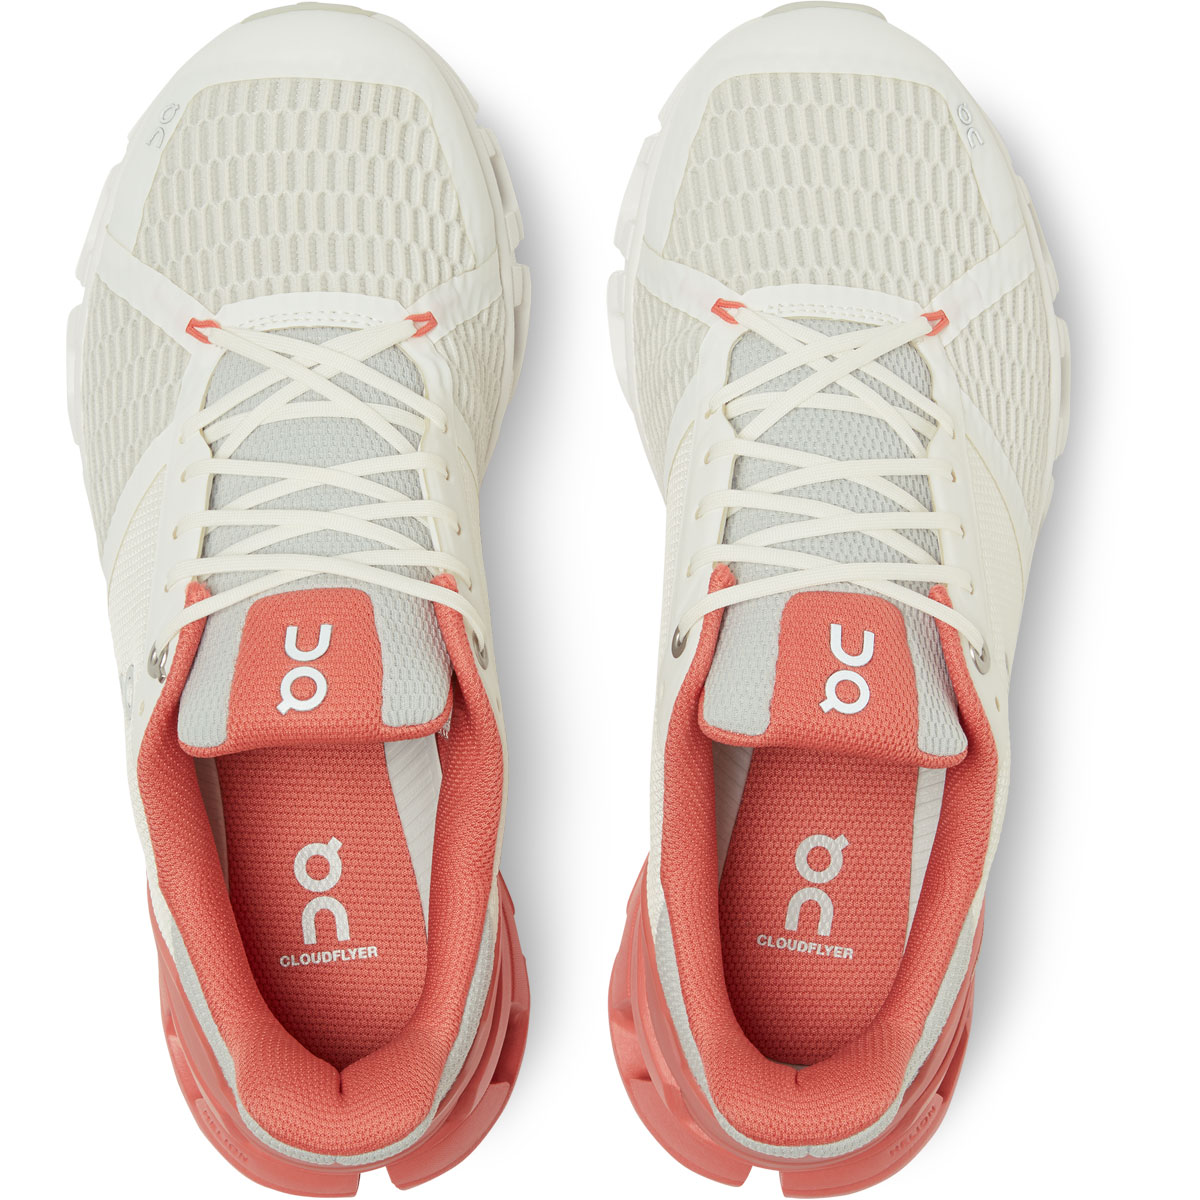 Women's On Cloudflyer 2.0 Running Shoe - Color: White/Coral - Size: 5 - Width: Regular, White/Coral, large, image 4